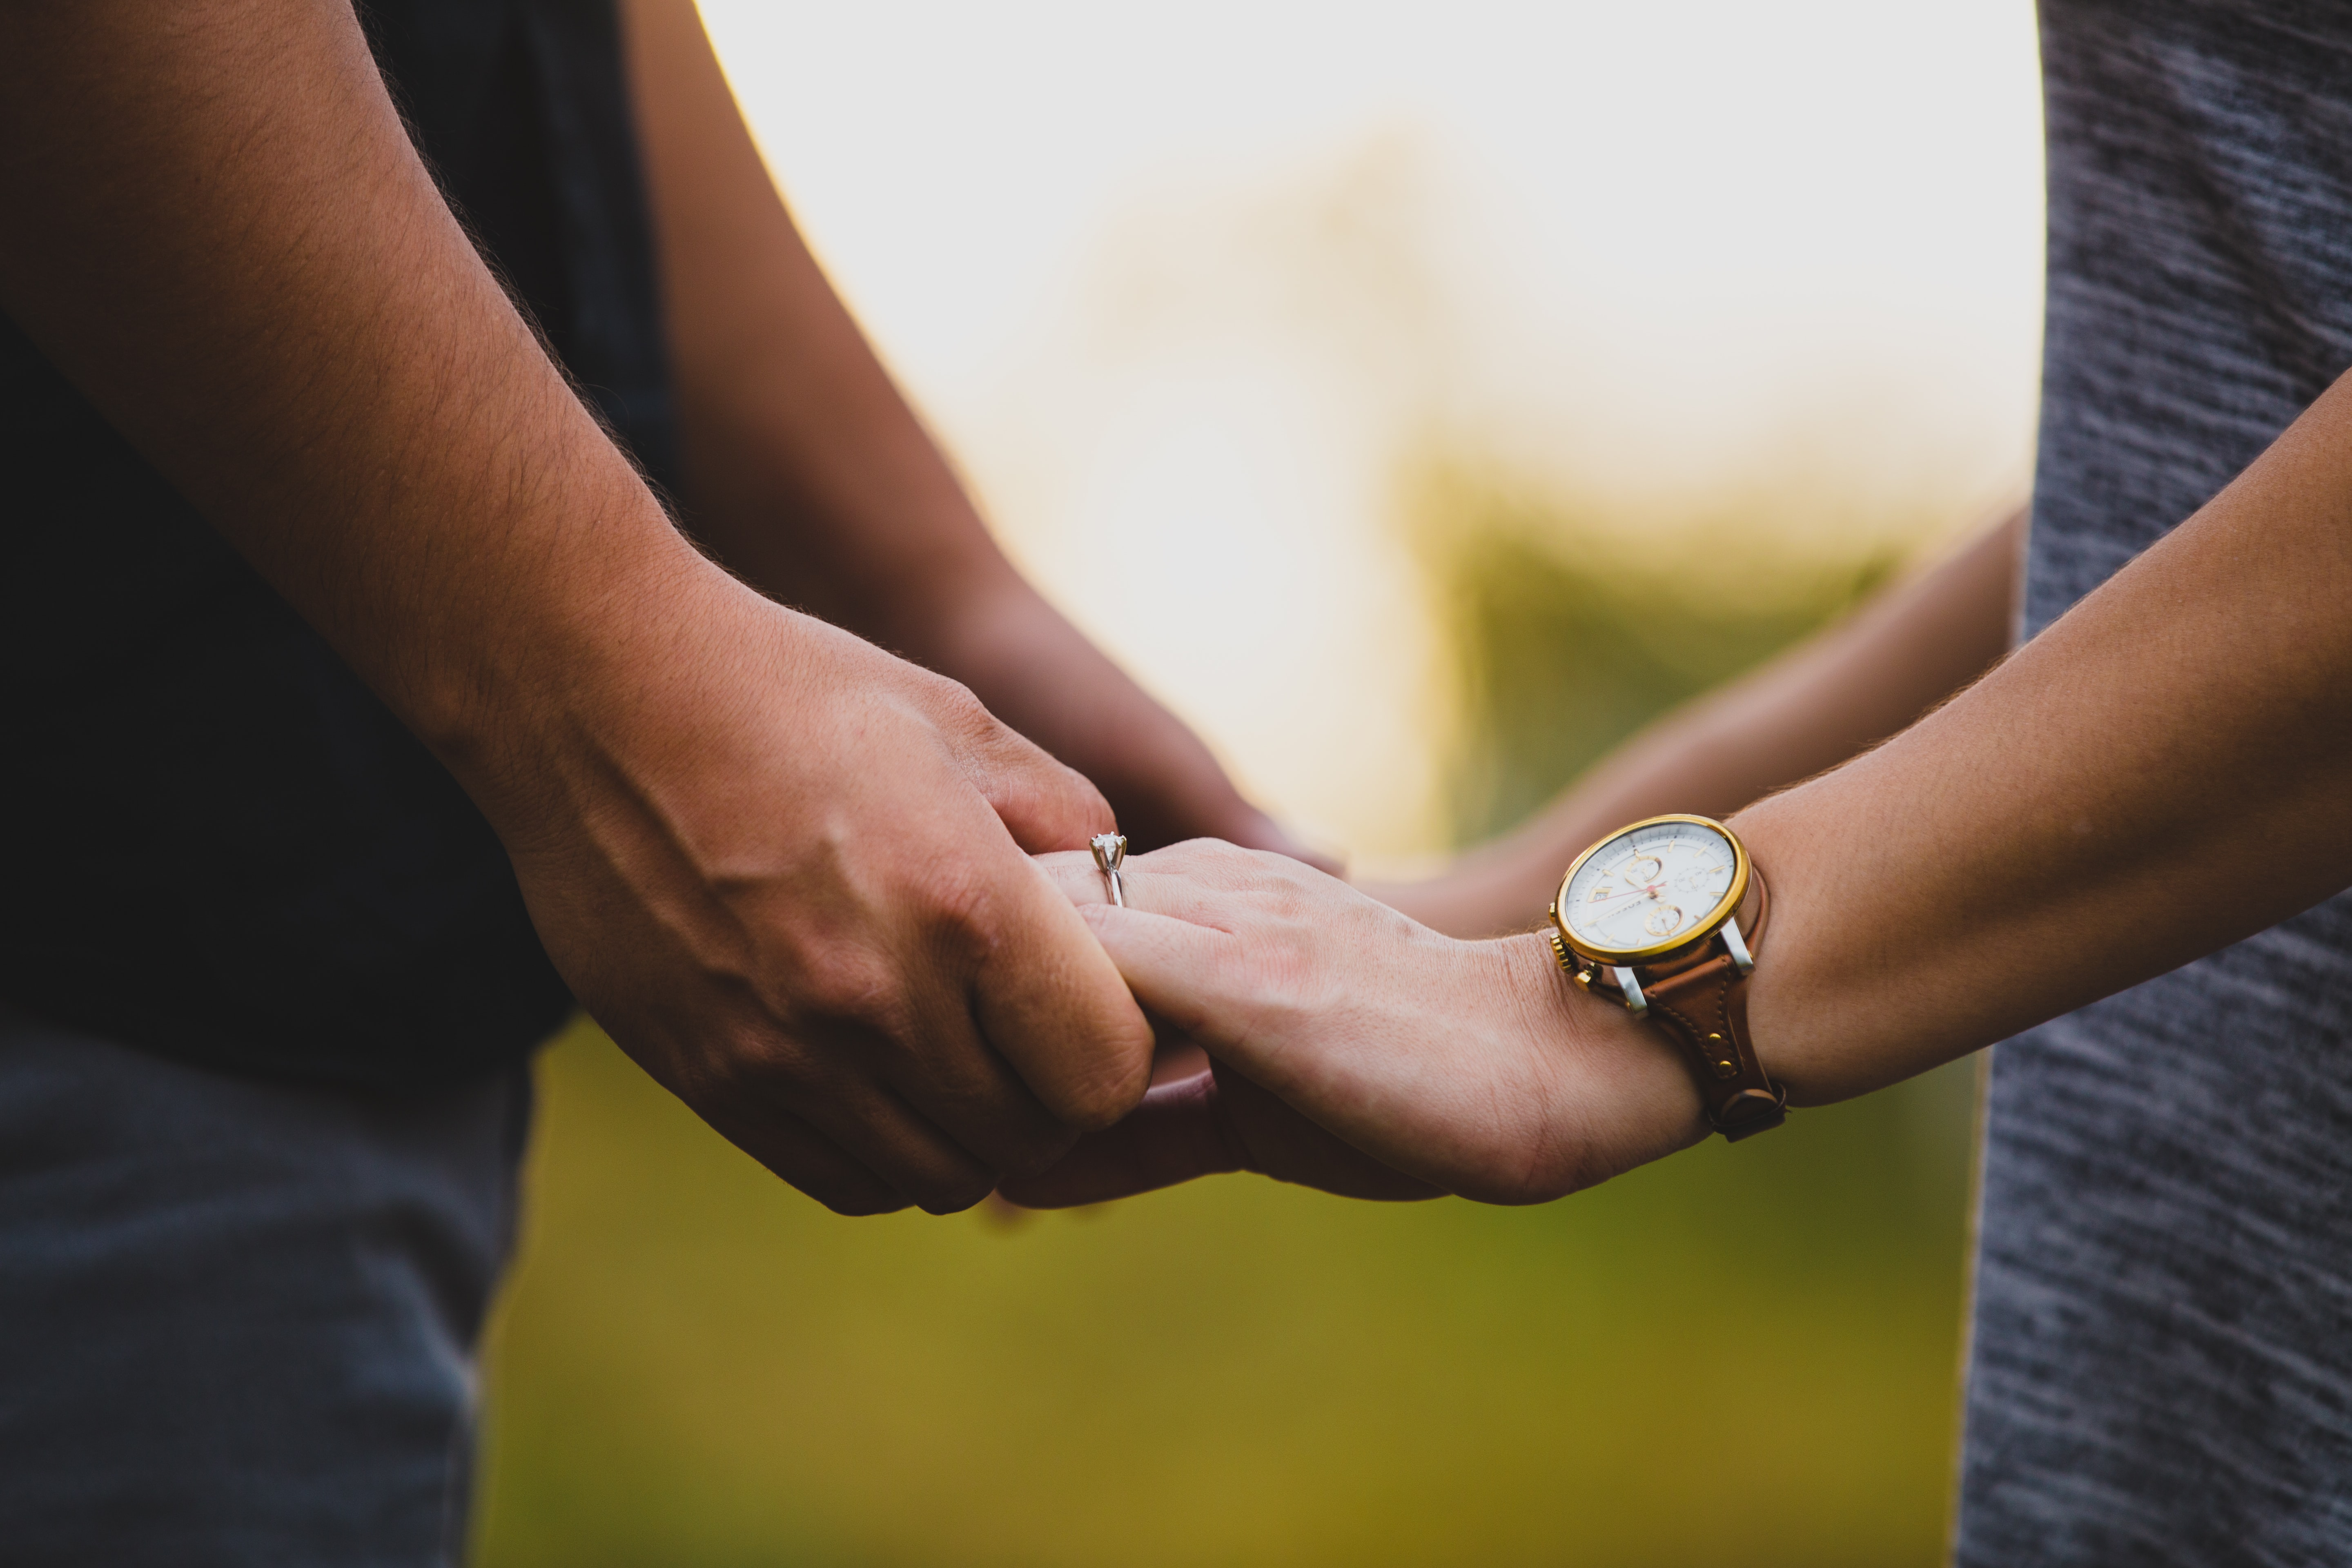 Close-up outdoors of man holding the hands of woman wearing a watch